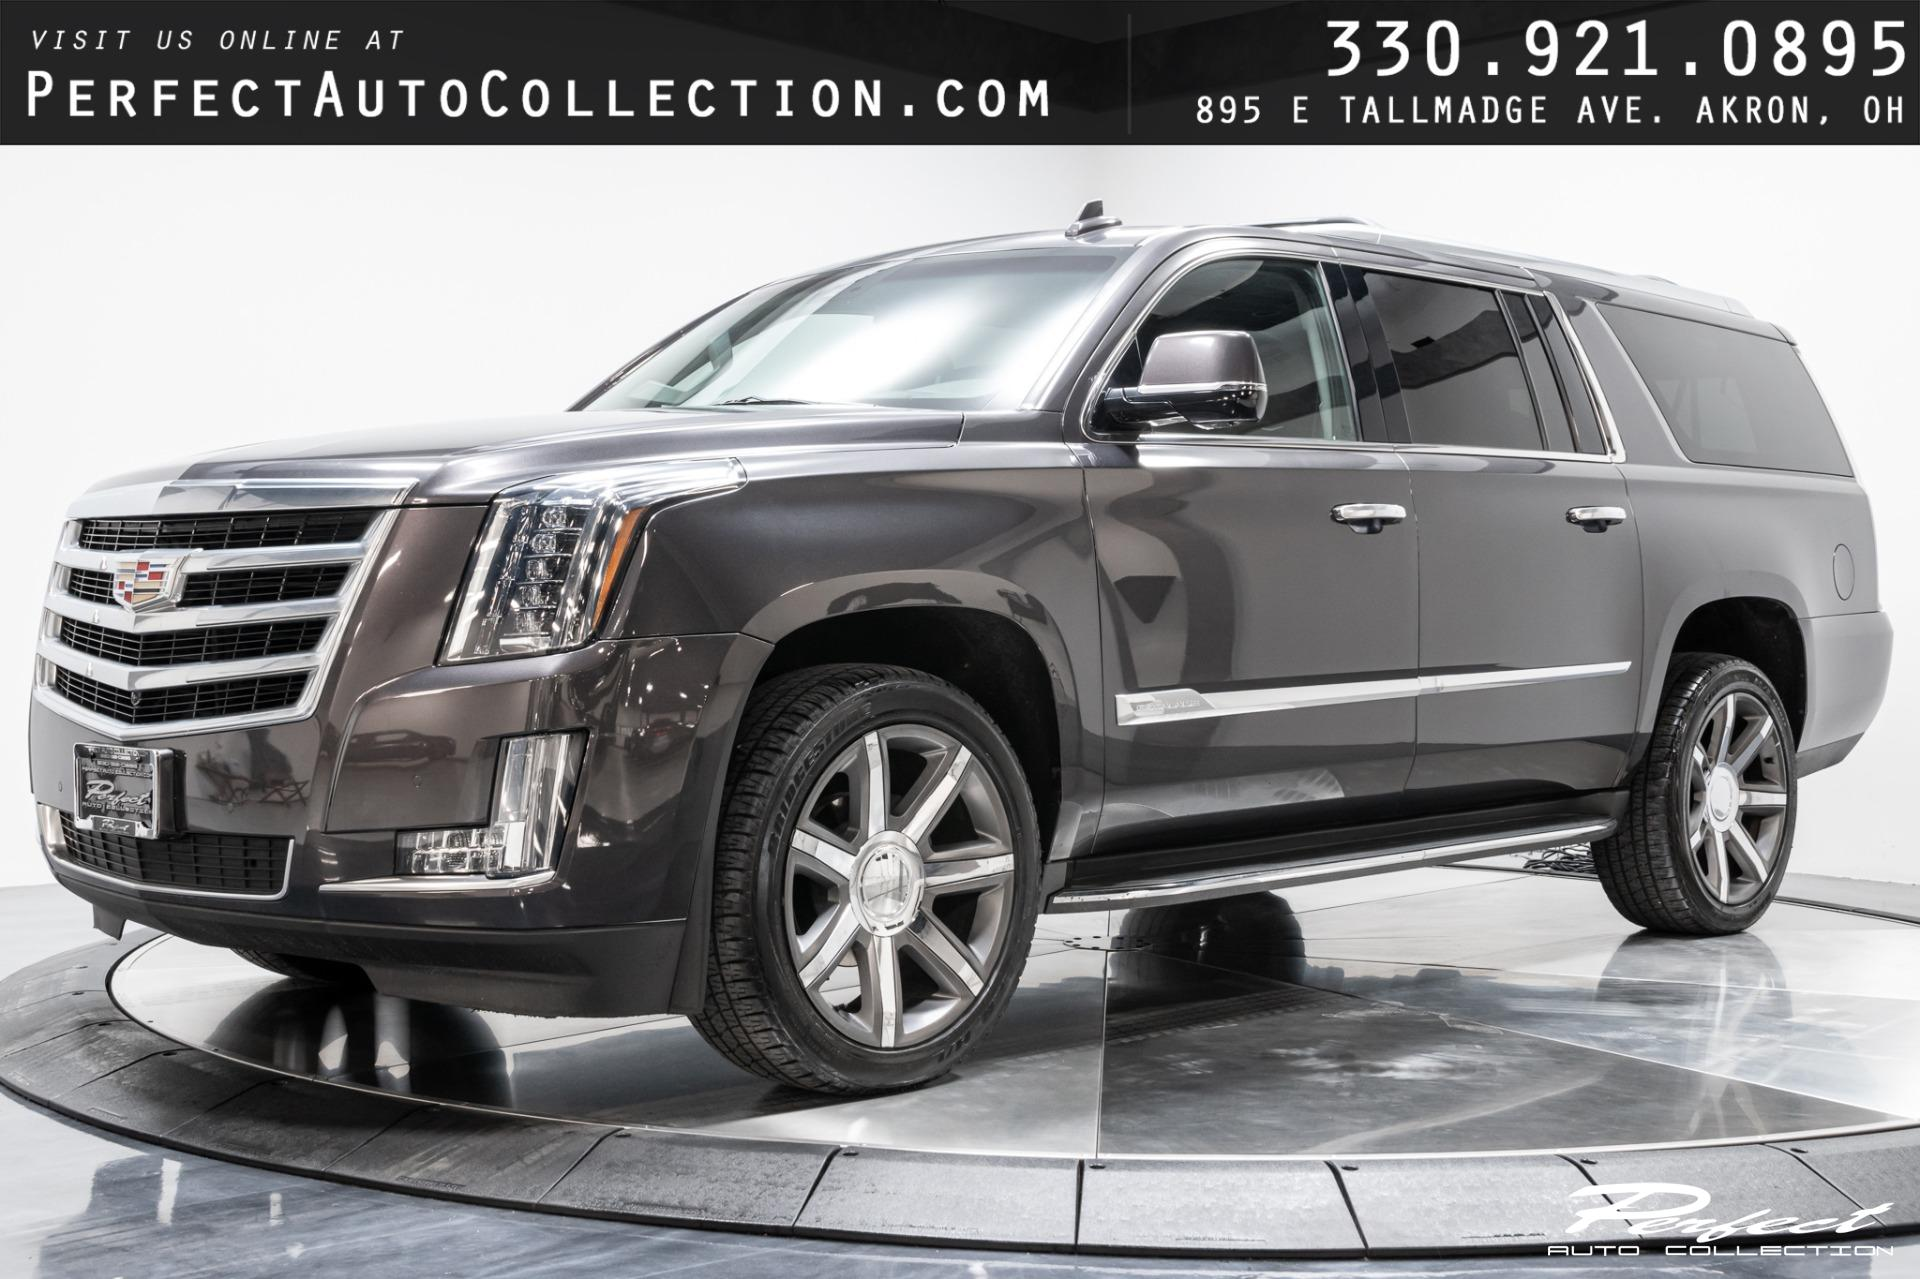 Used 2016 Cadillac Escalade ESV Luxury Collection for sale $41,493 at Perfect Auto Collection in Akron OH 44310 1